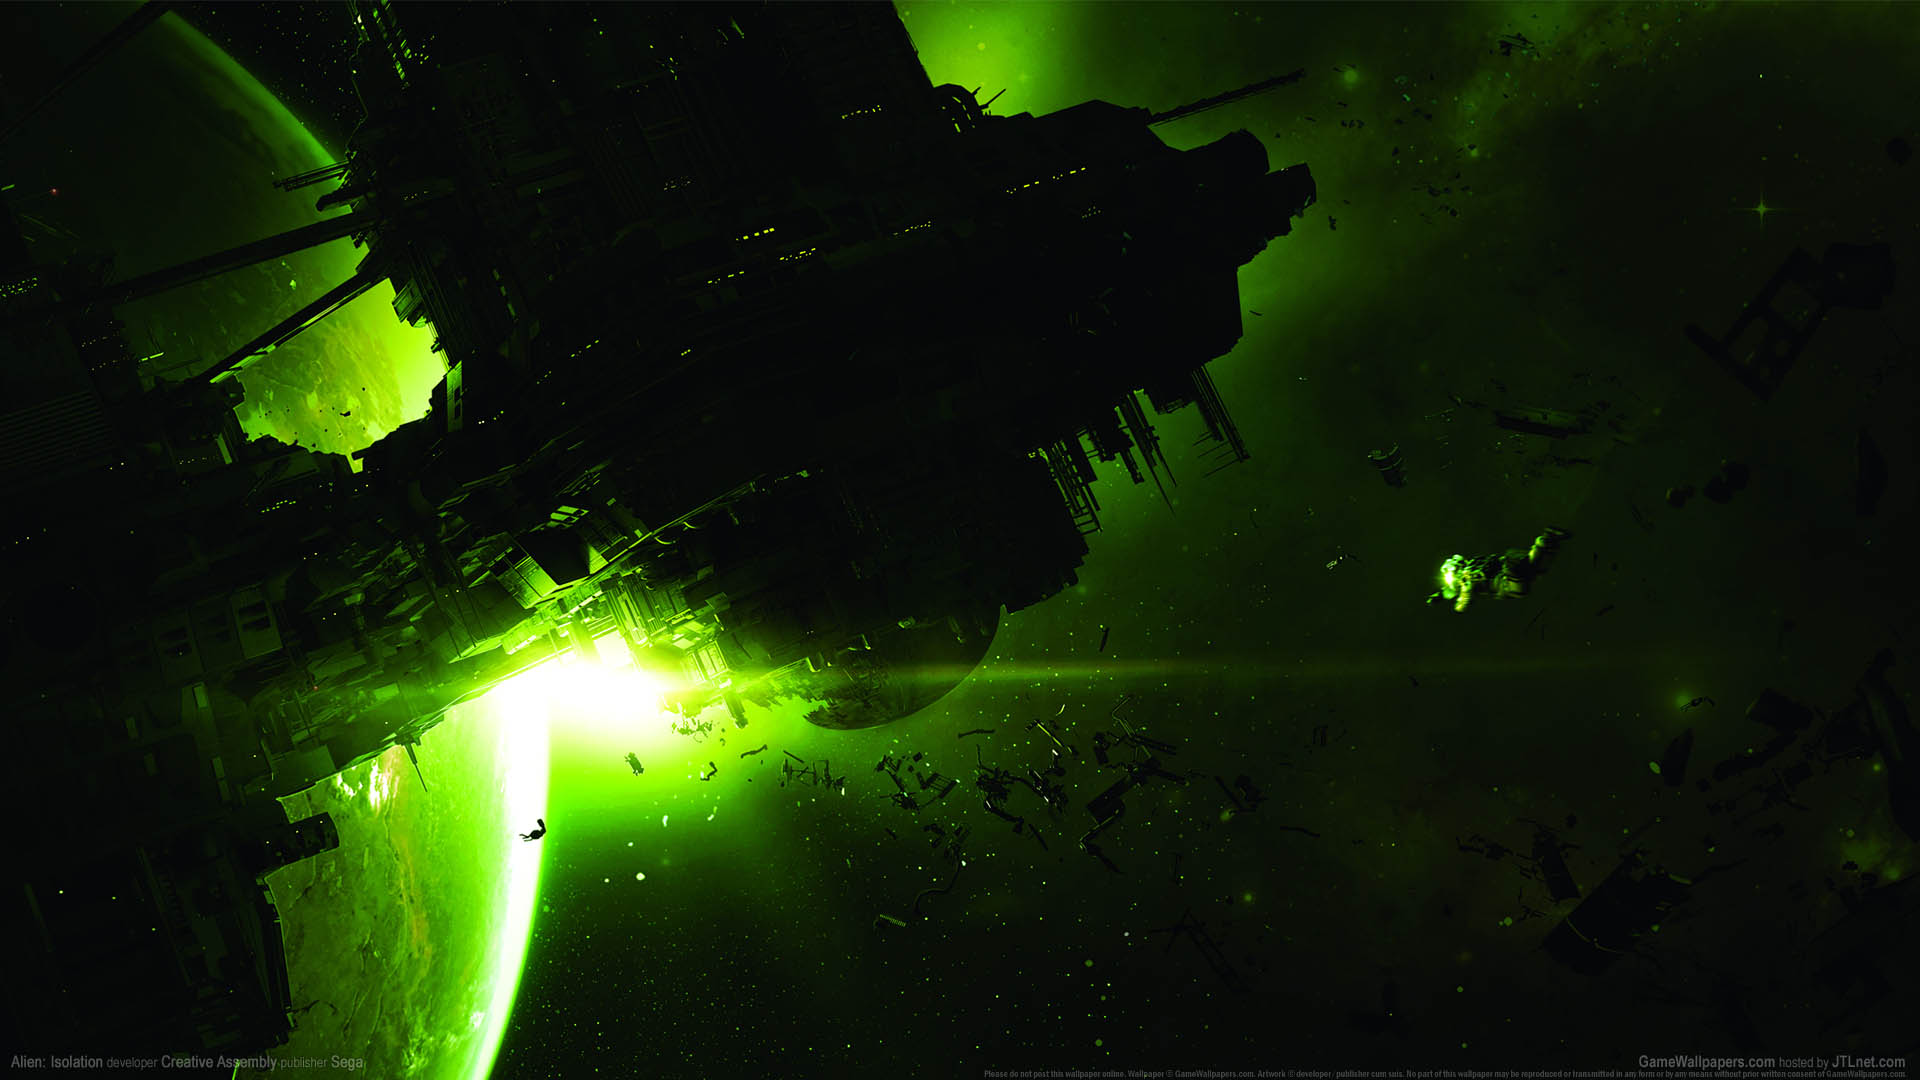 Alien-Isolation-1920x1080-wallpaper-wp3402253